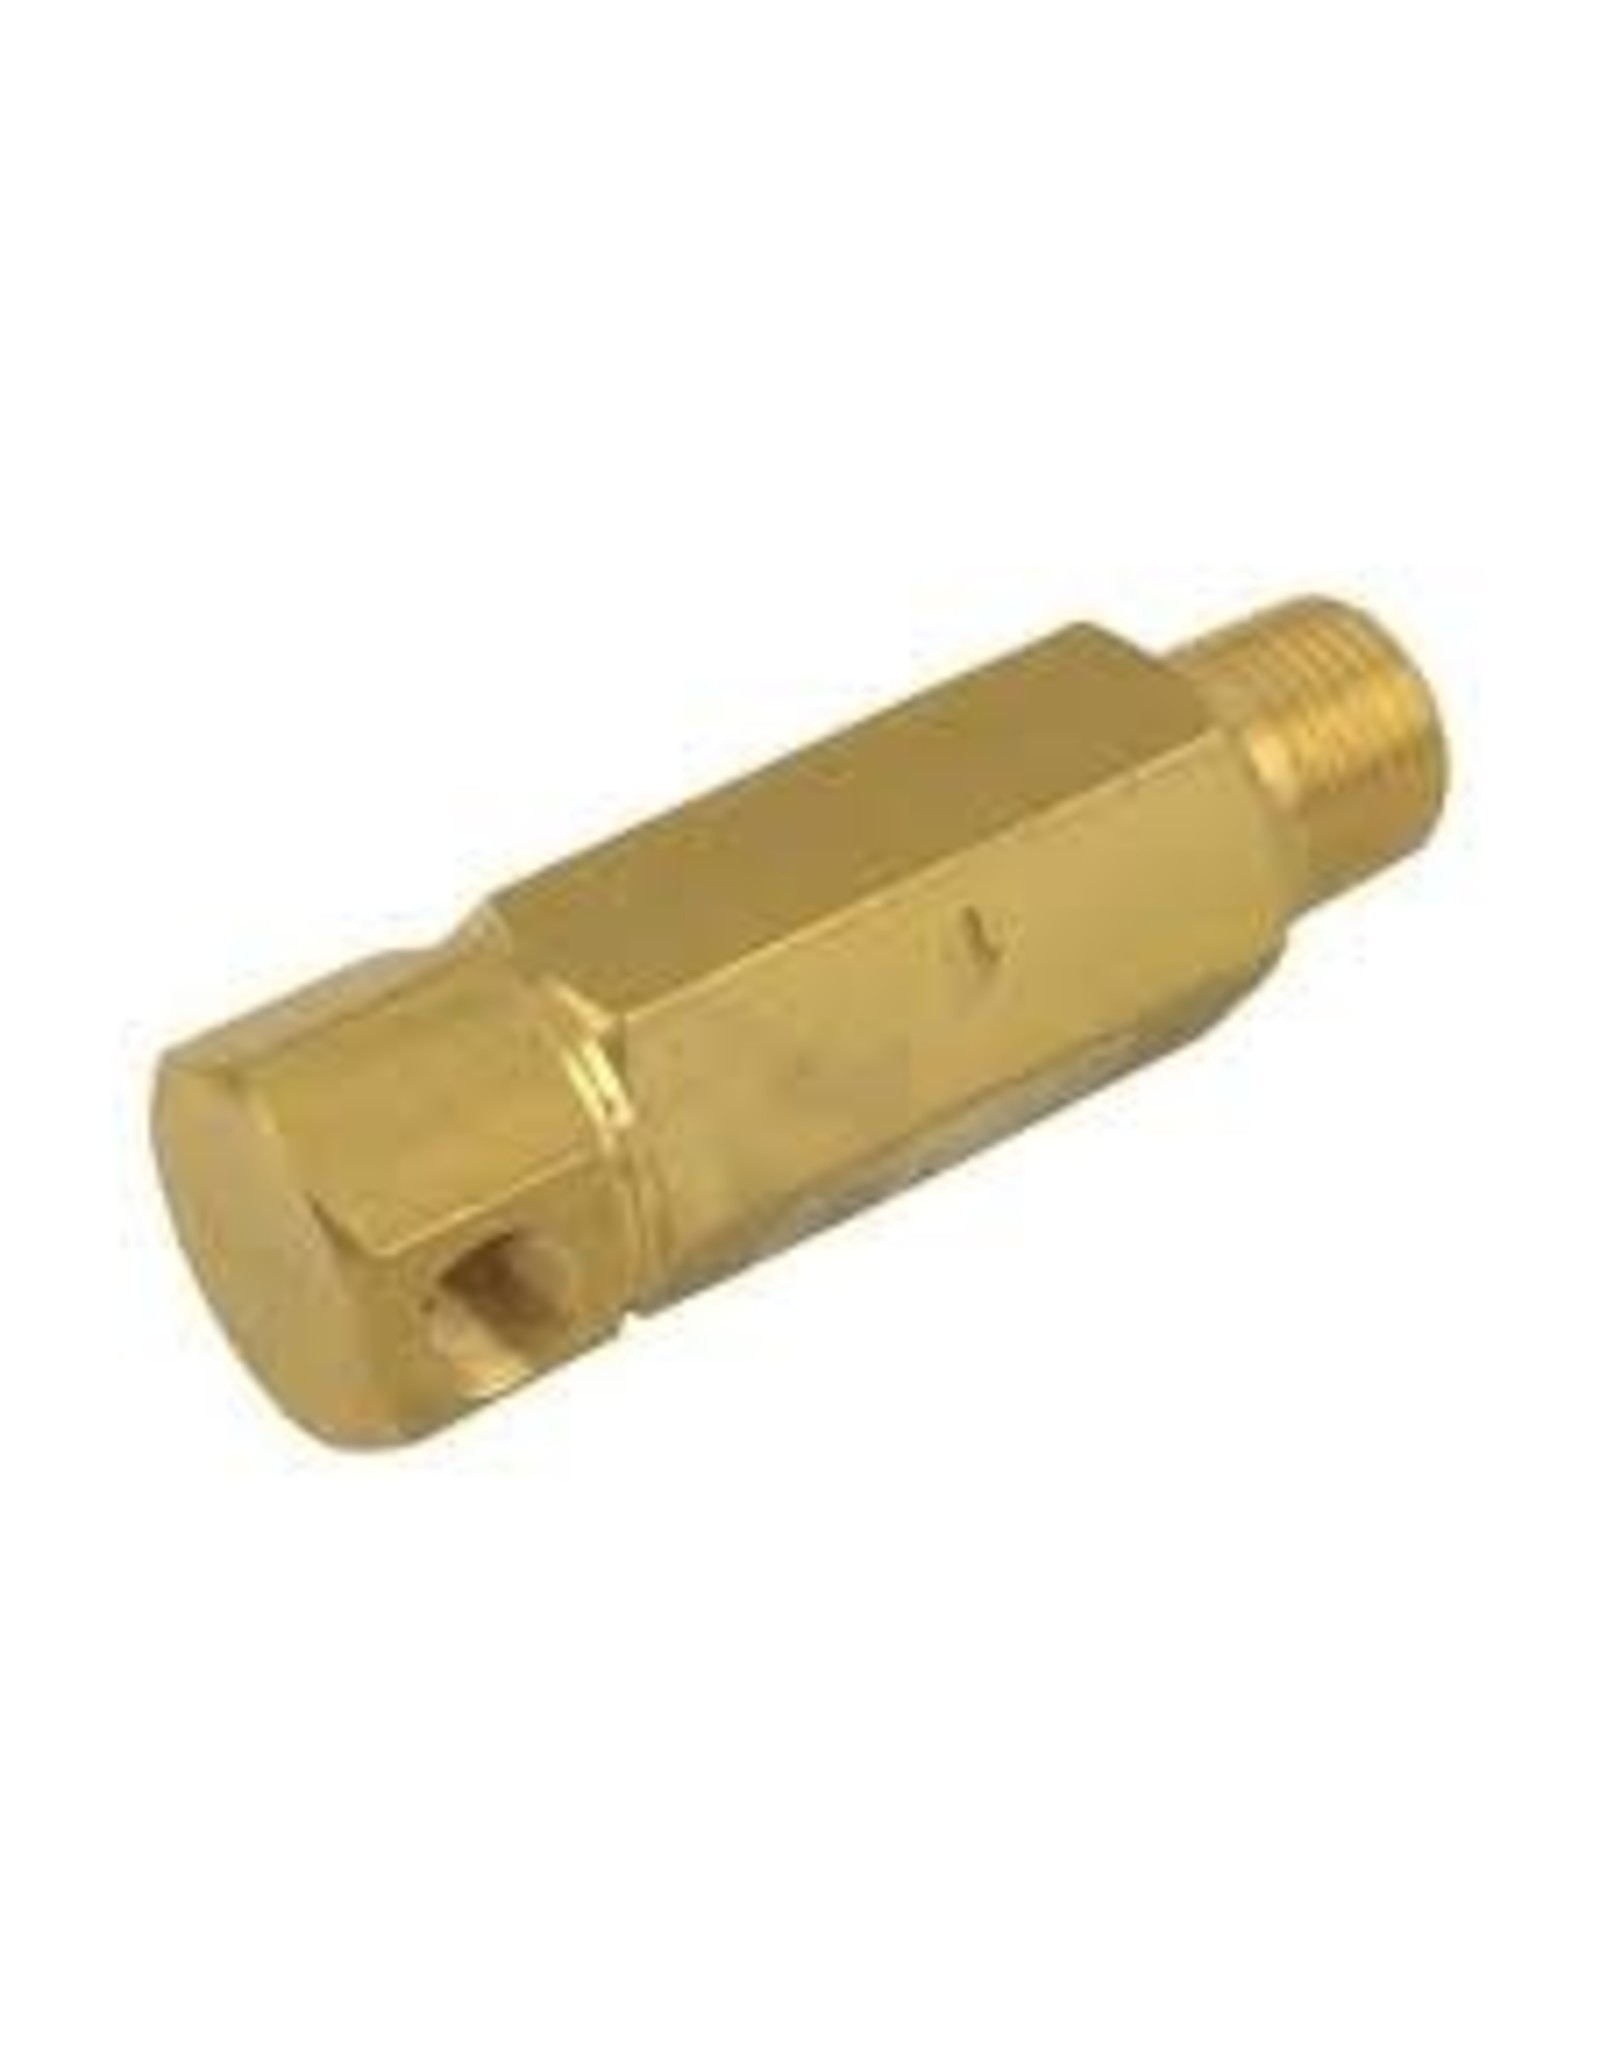 "Thermo Valve 7145 cat pump 1/2"" Inlet 165 Degrees F"